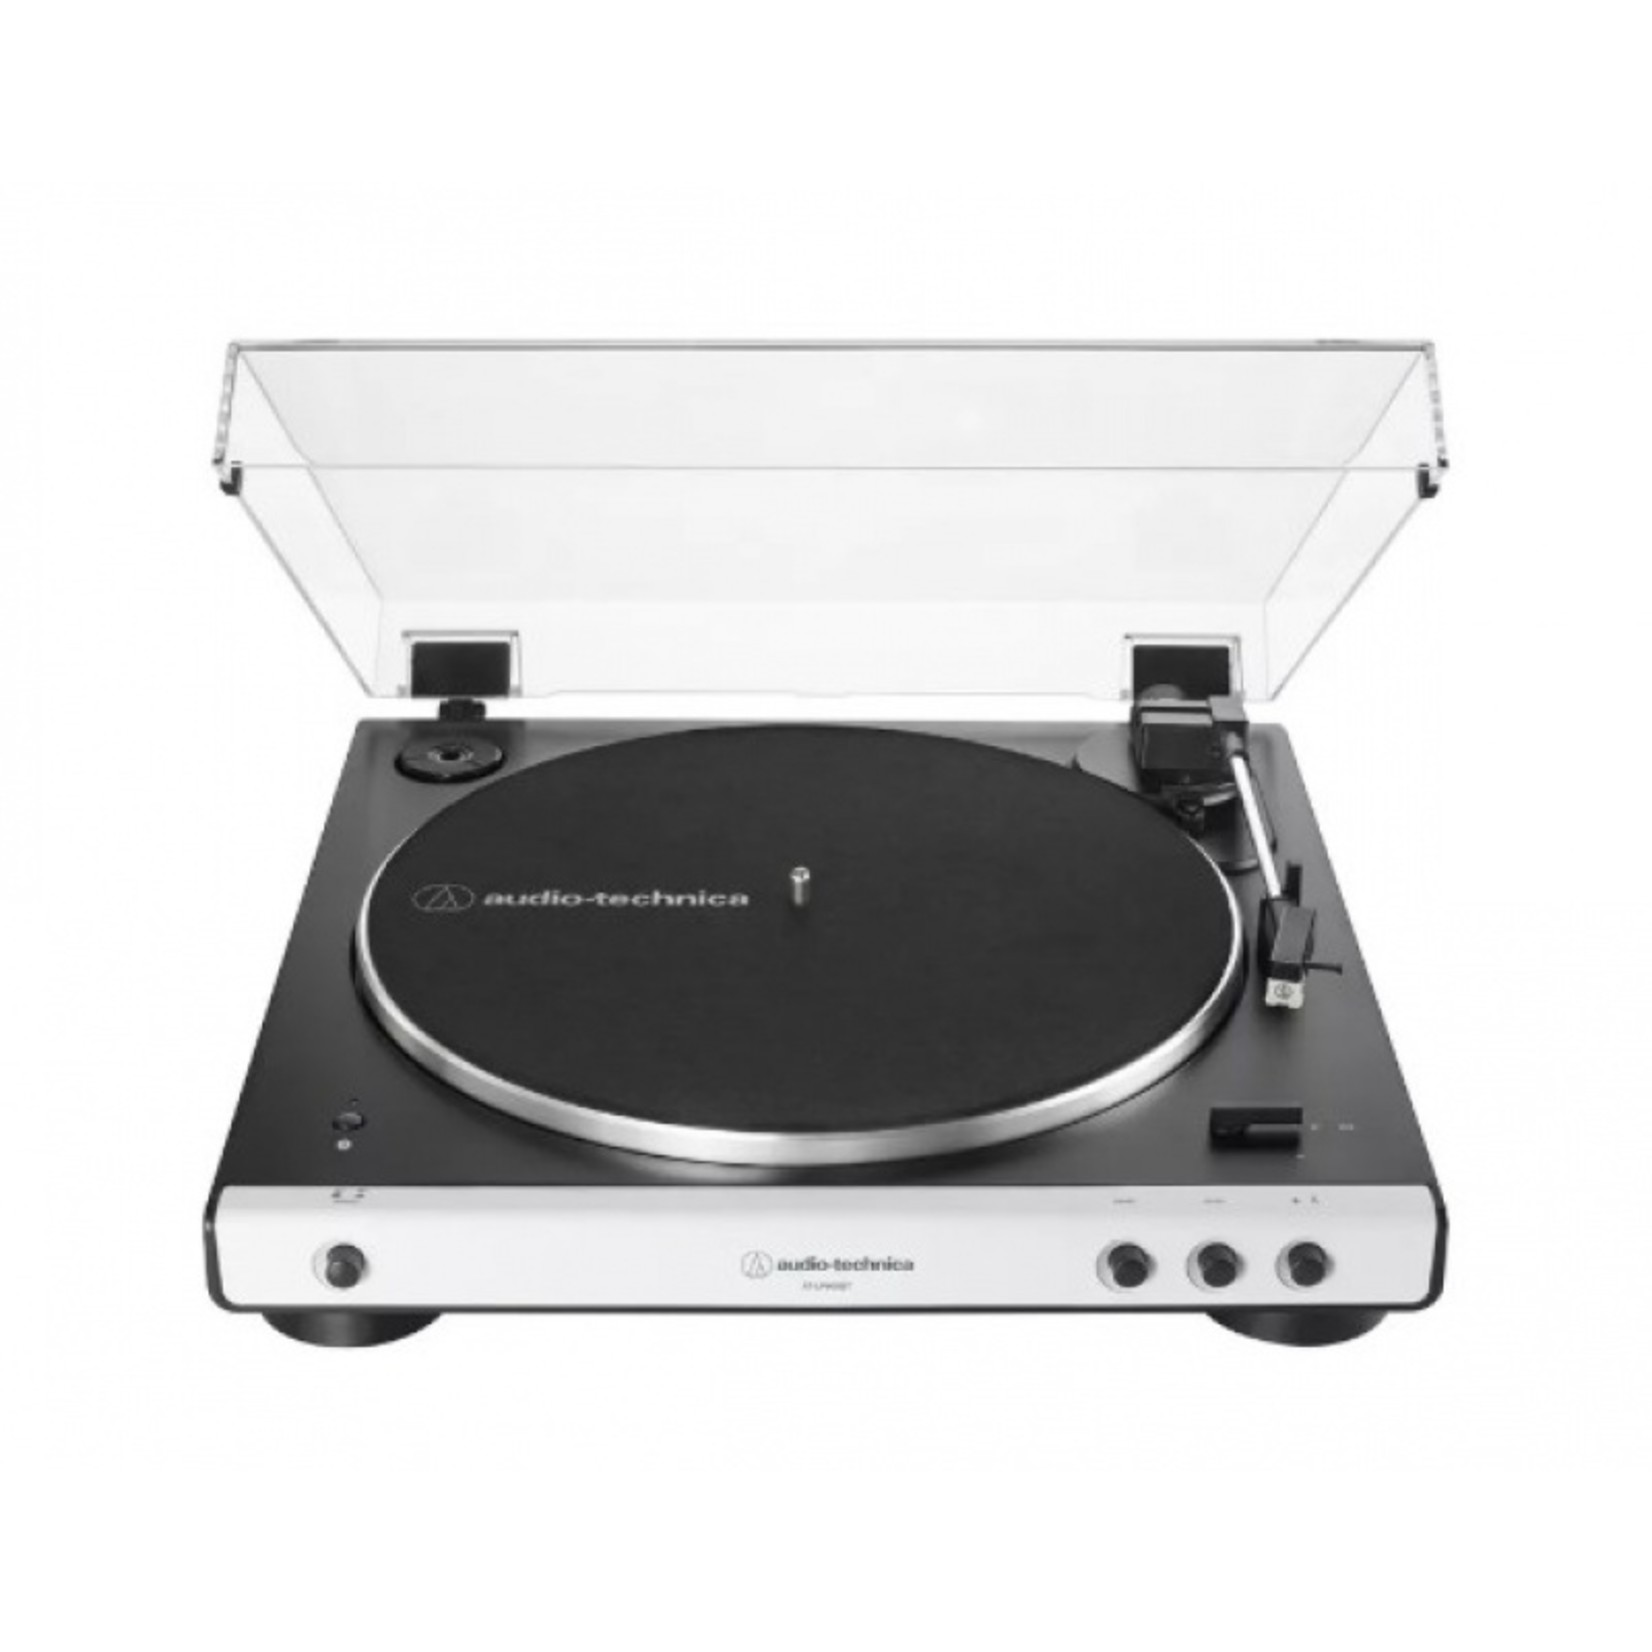 AUDIO-TECHNICA AT-LP60XBT-WH BT TURNTABLE - WHITE